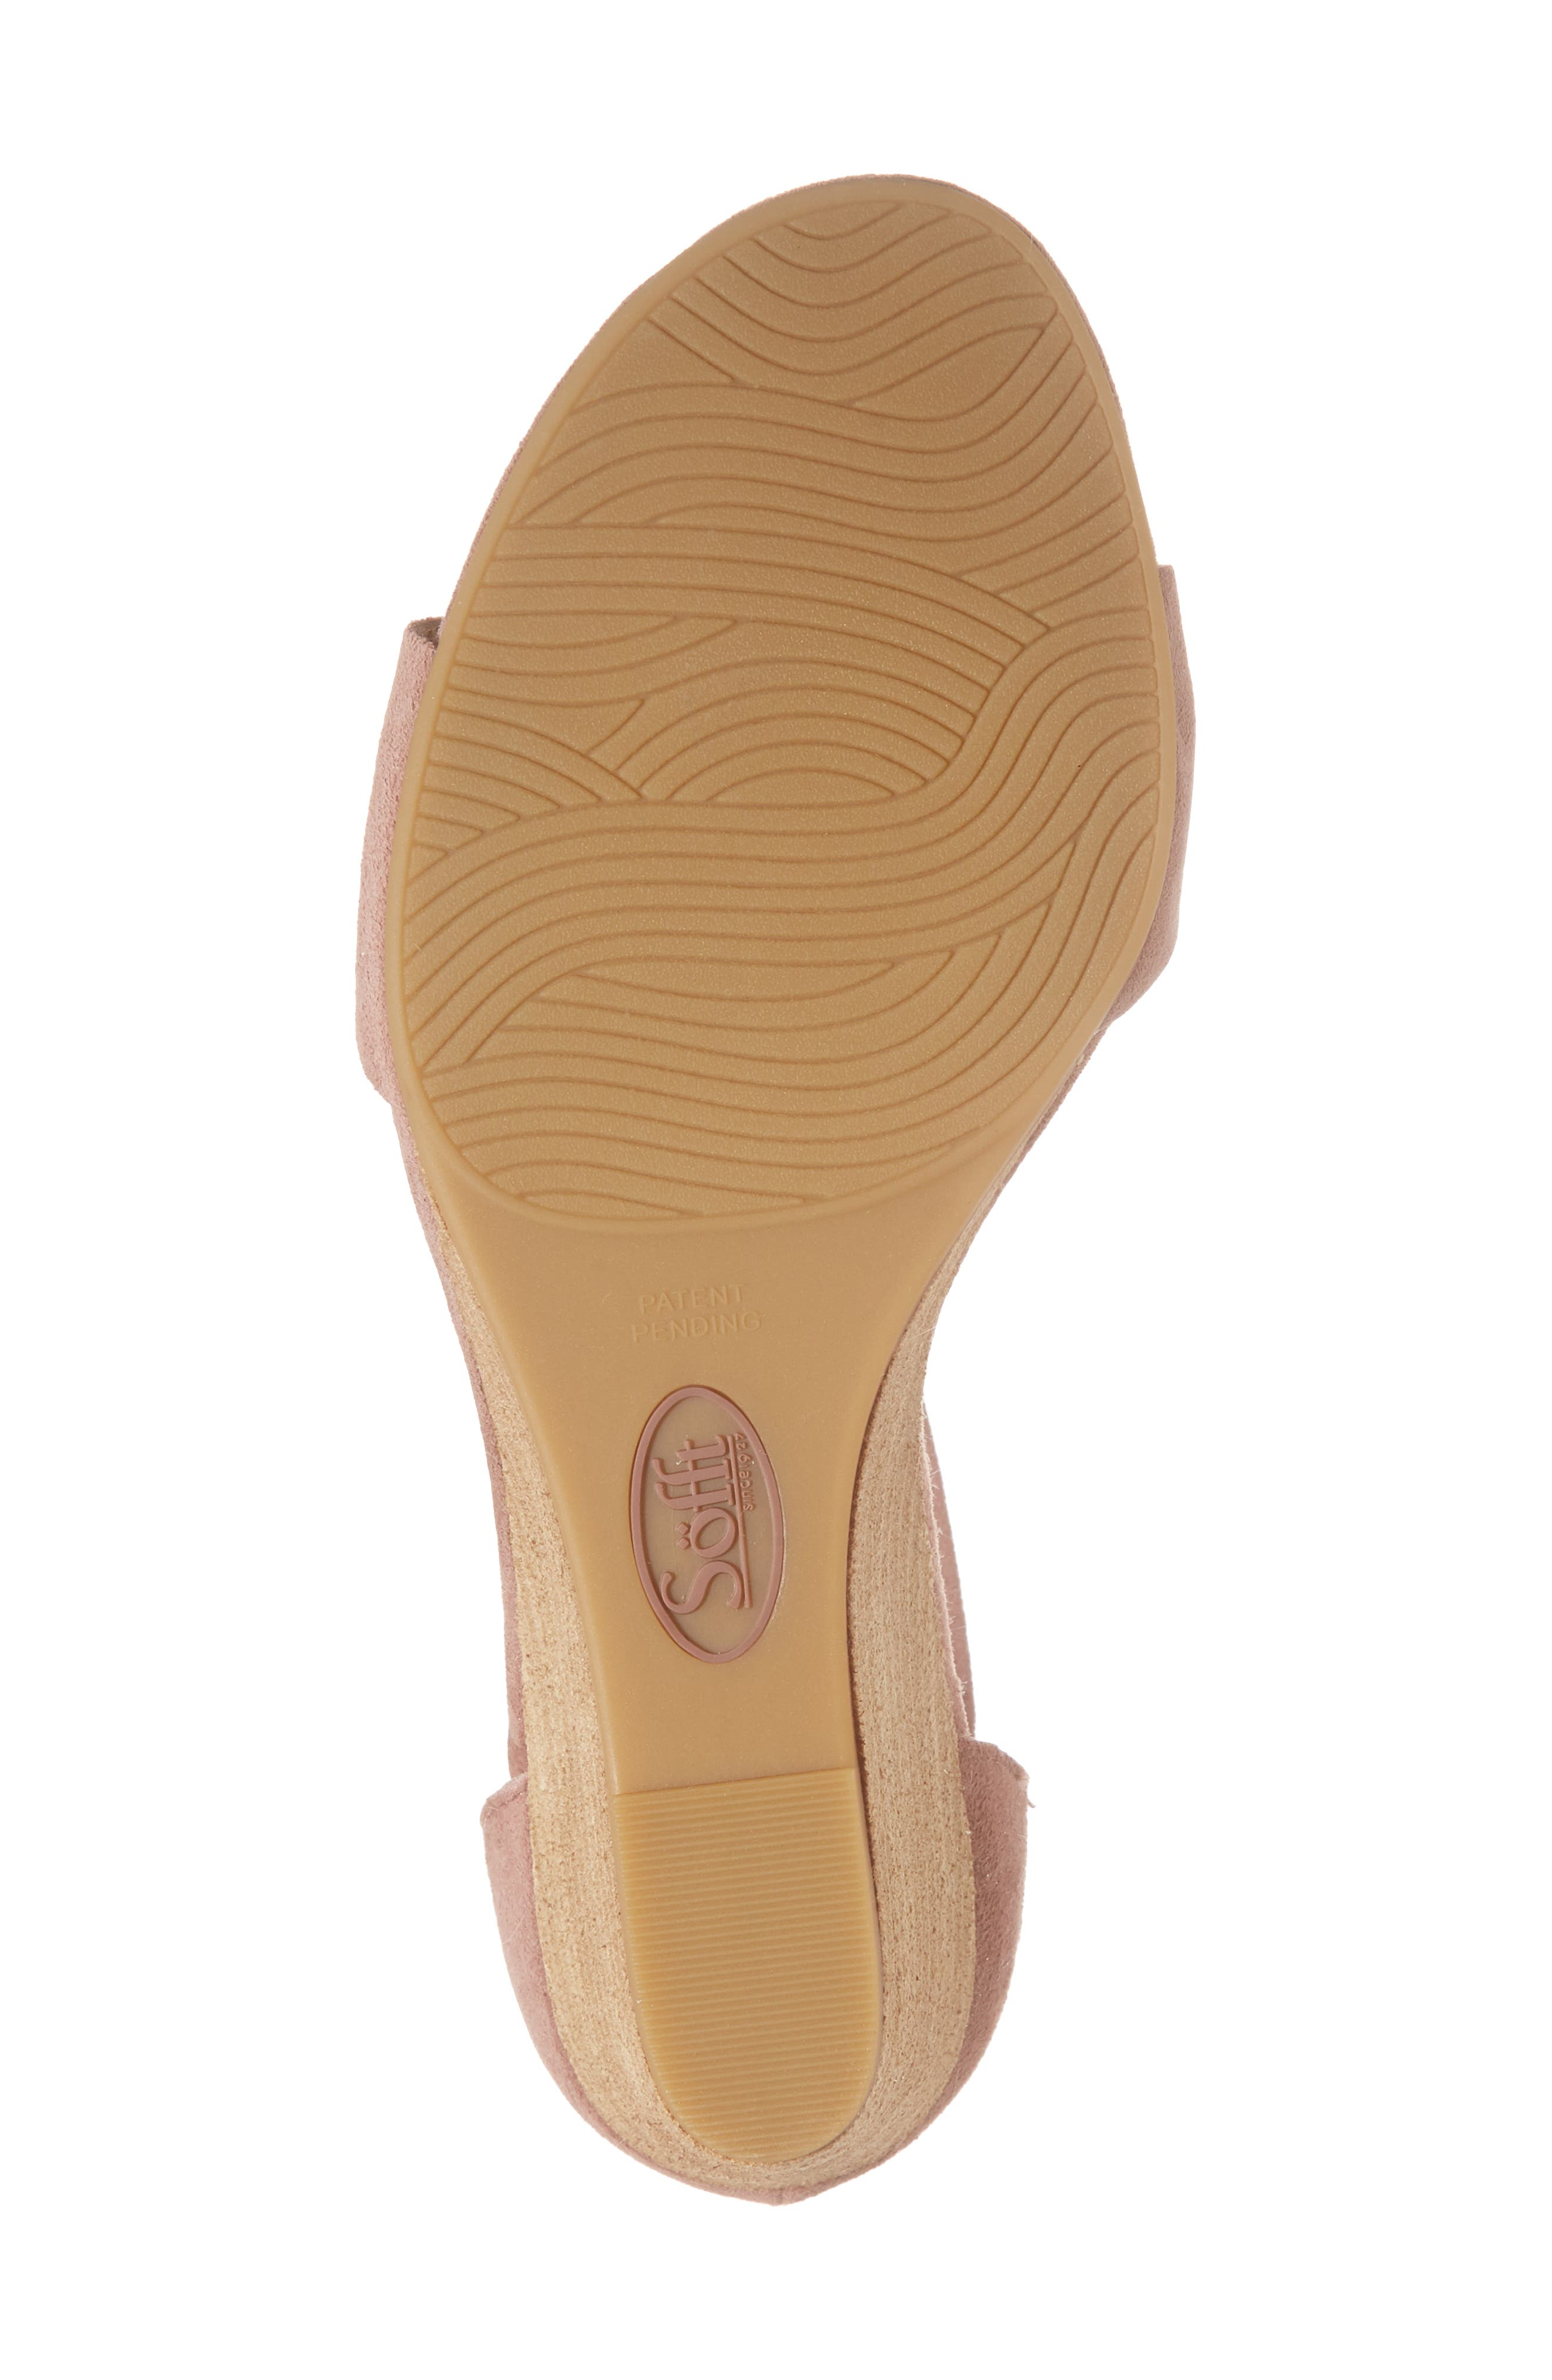 Marla Wedge Sandal,                             Alternate thumbnail 6, color,                             MULBERRY SUEDE